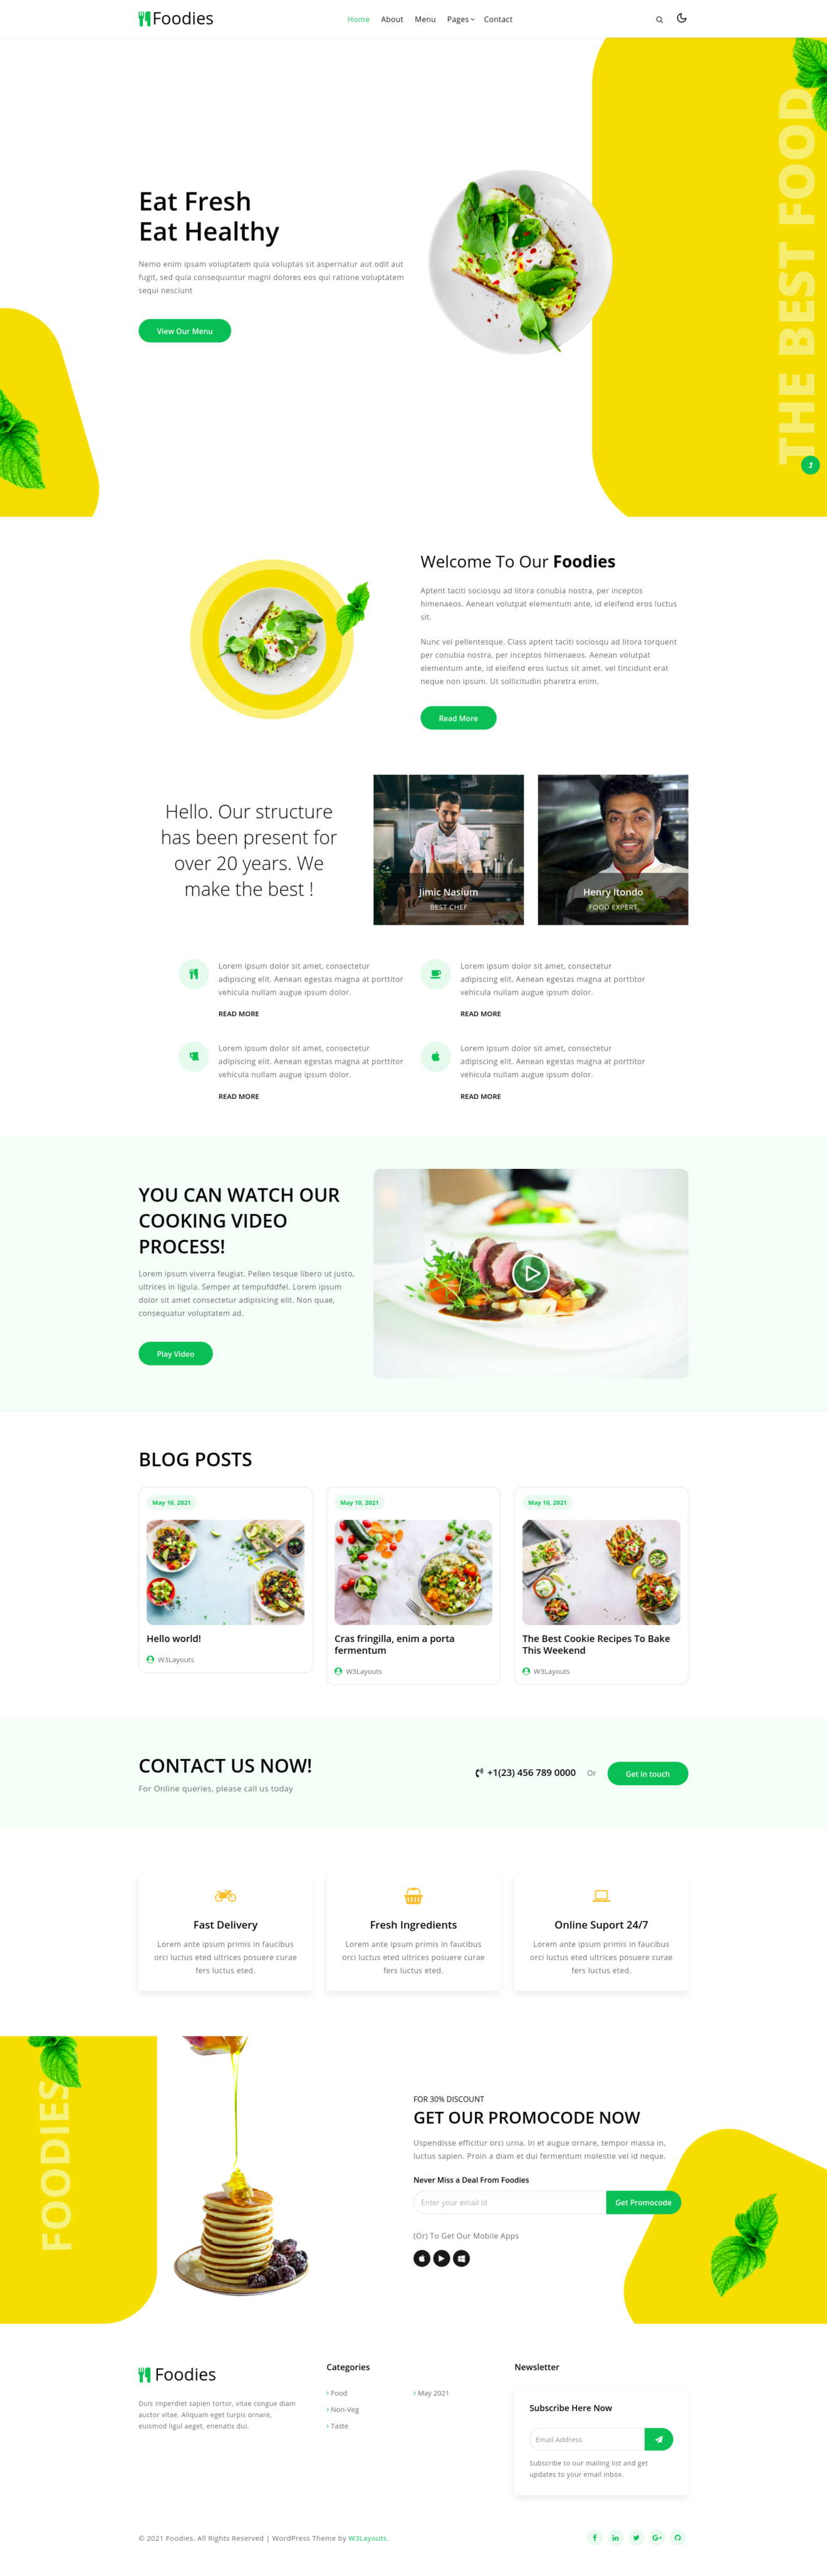 Foodies a restaurant website template home page